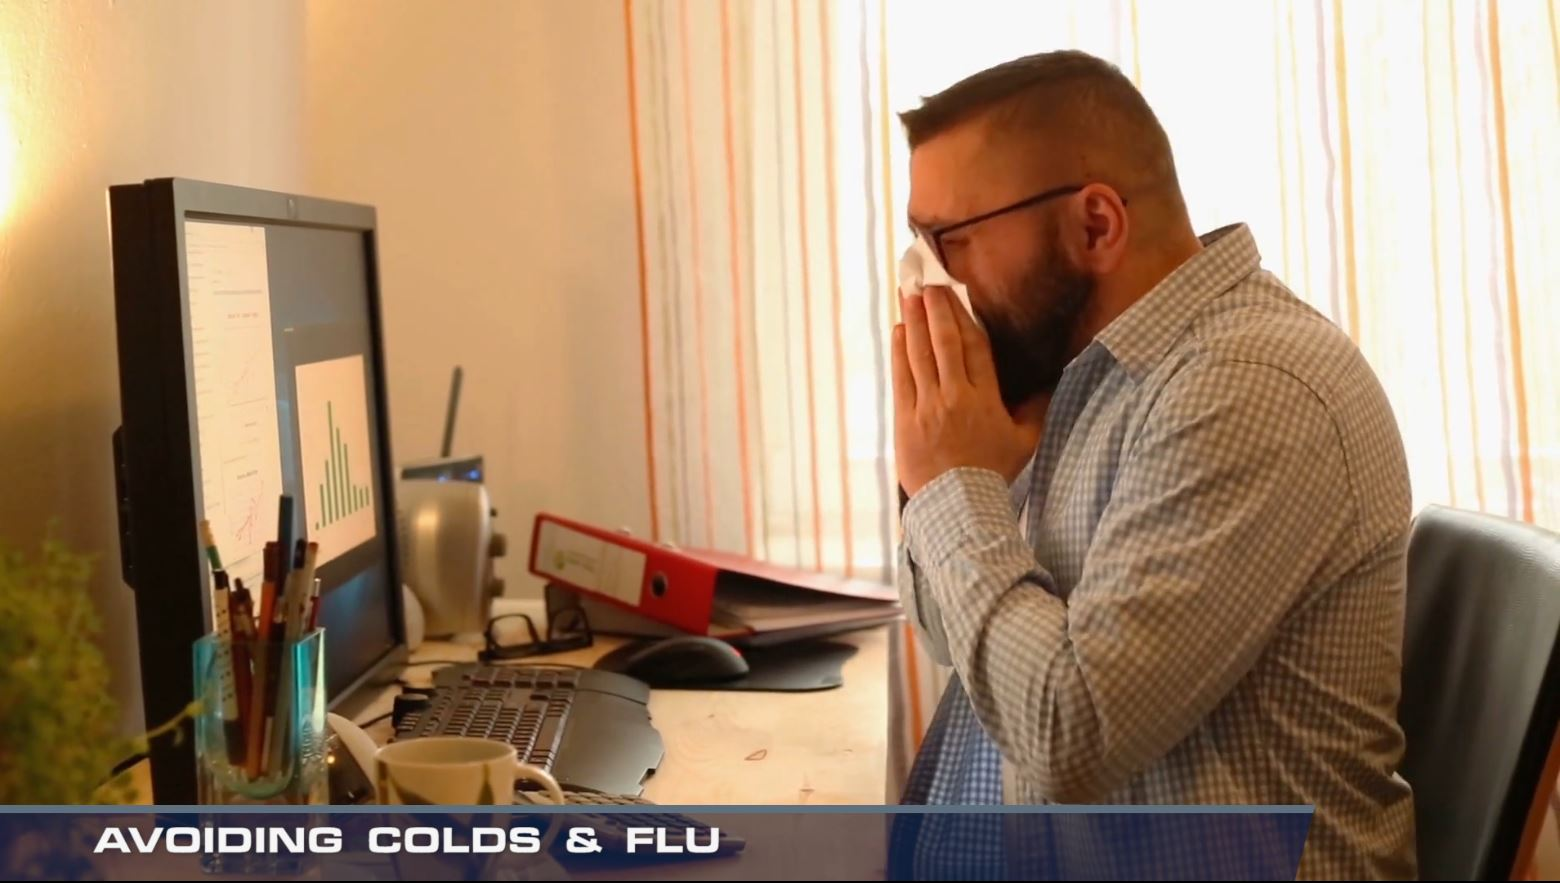 VIDEO: Fighting off the Cold and Flu